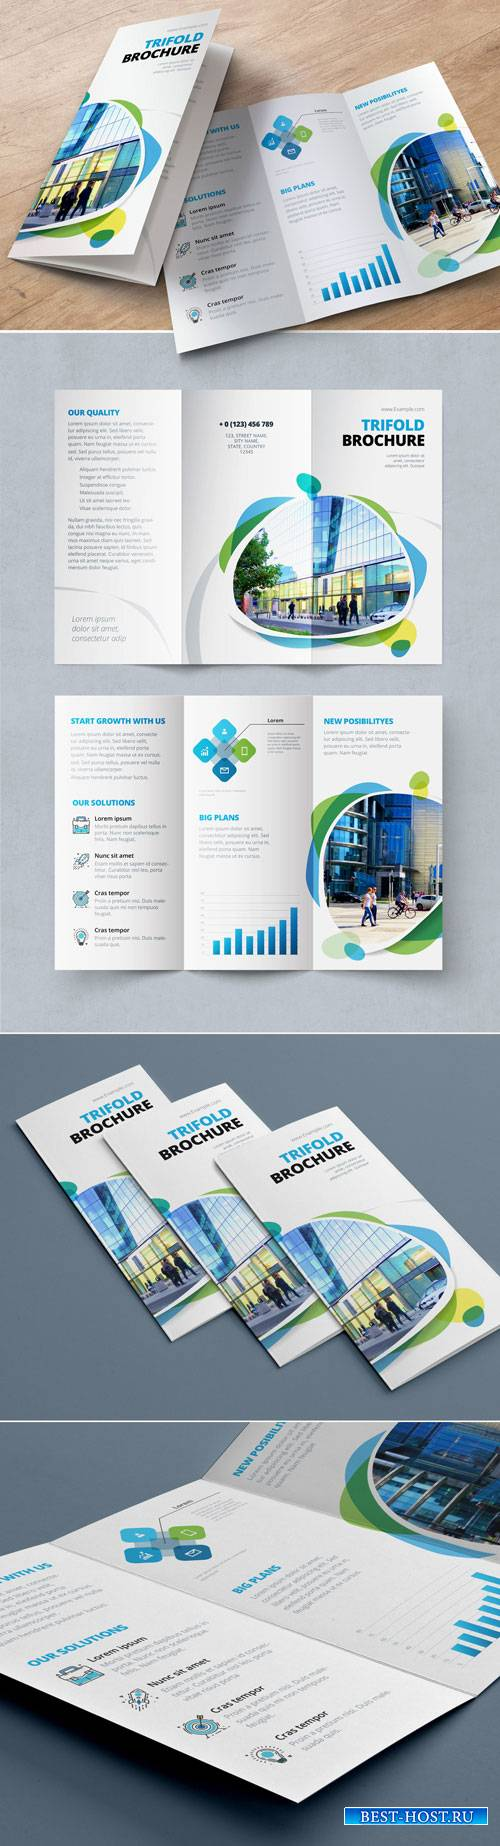 Blue and Green Trifold Brochure Layout with Abstract Spots 212820467